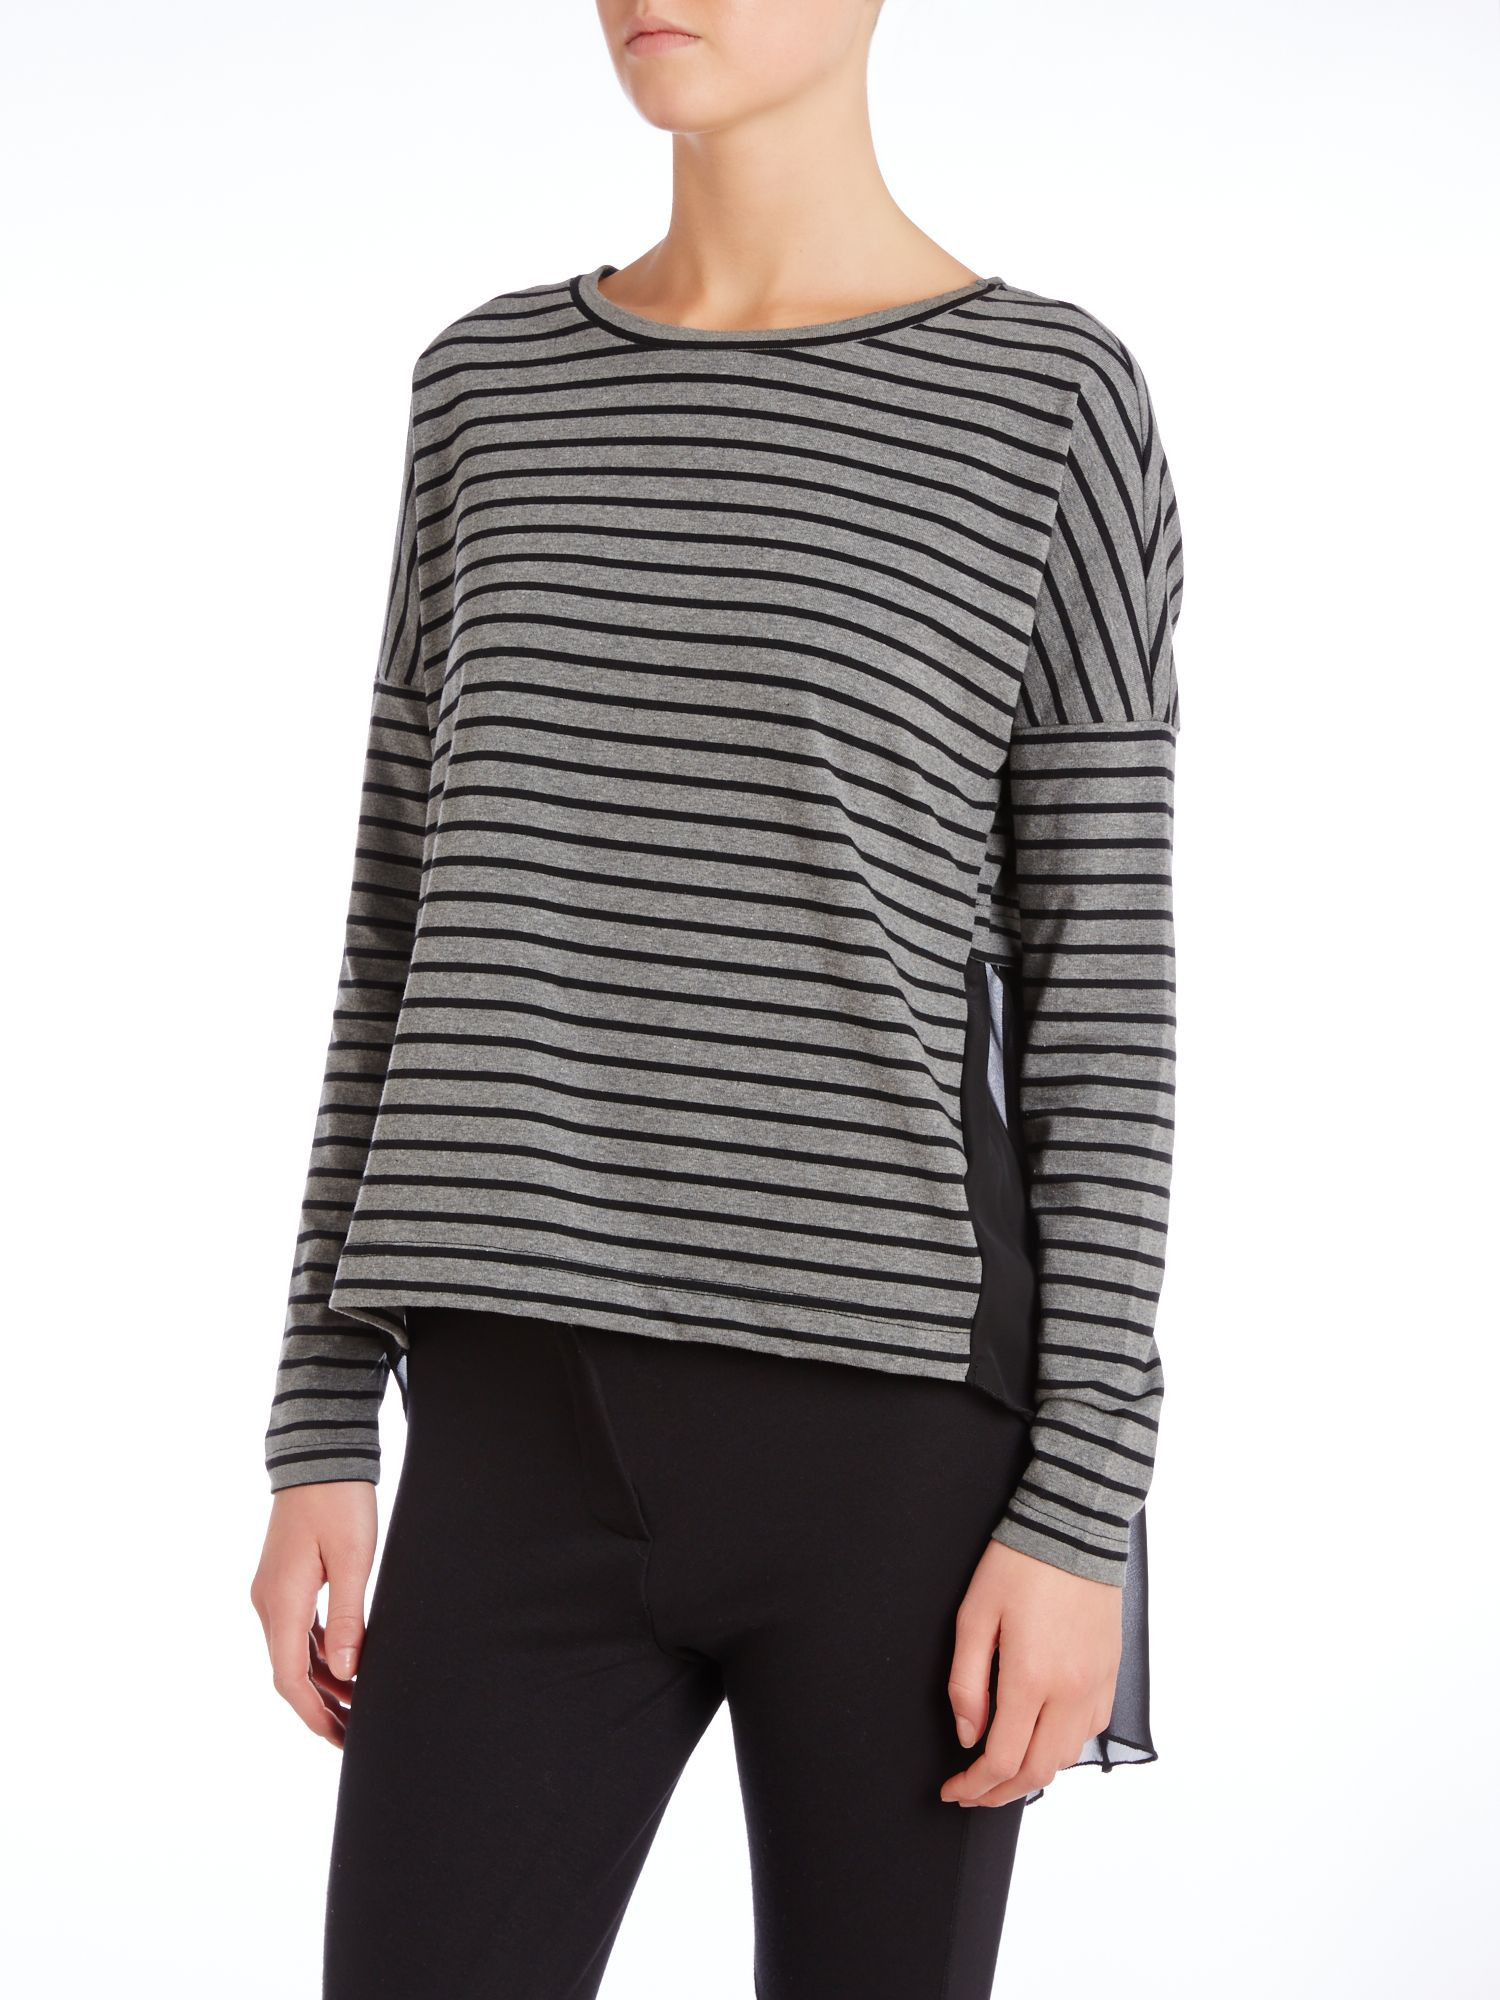 Long sleeved striped chiffon back top